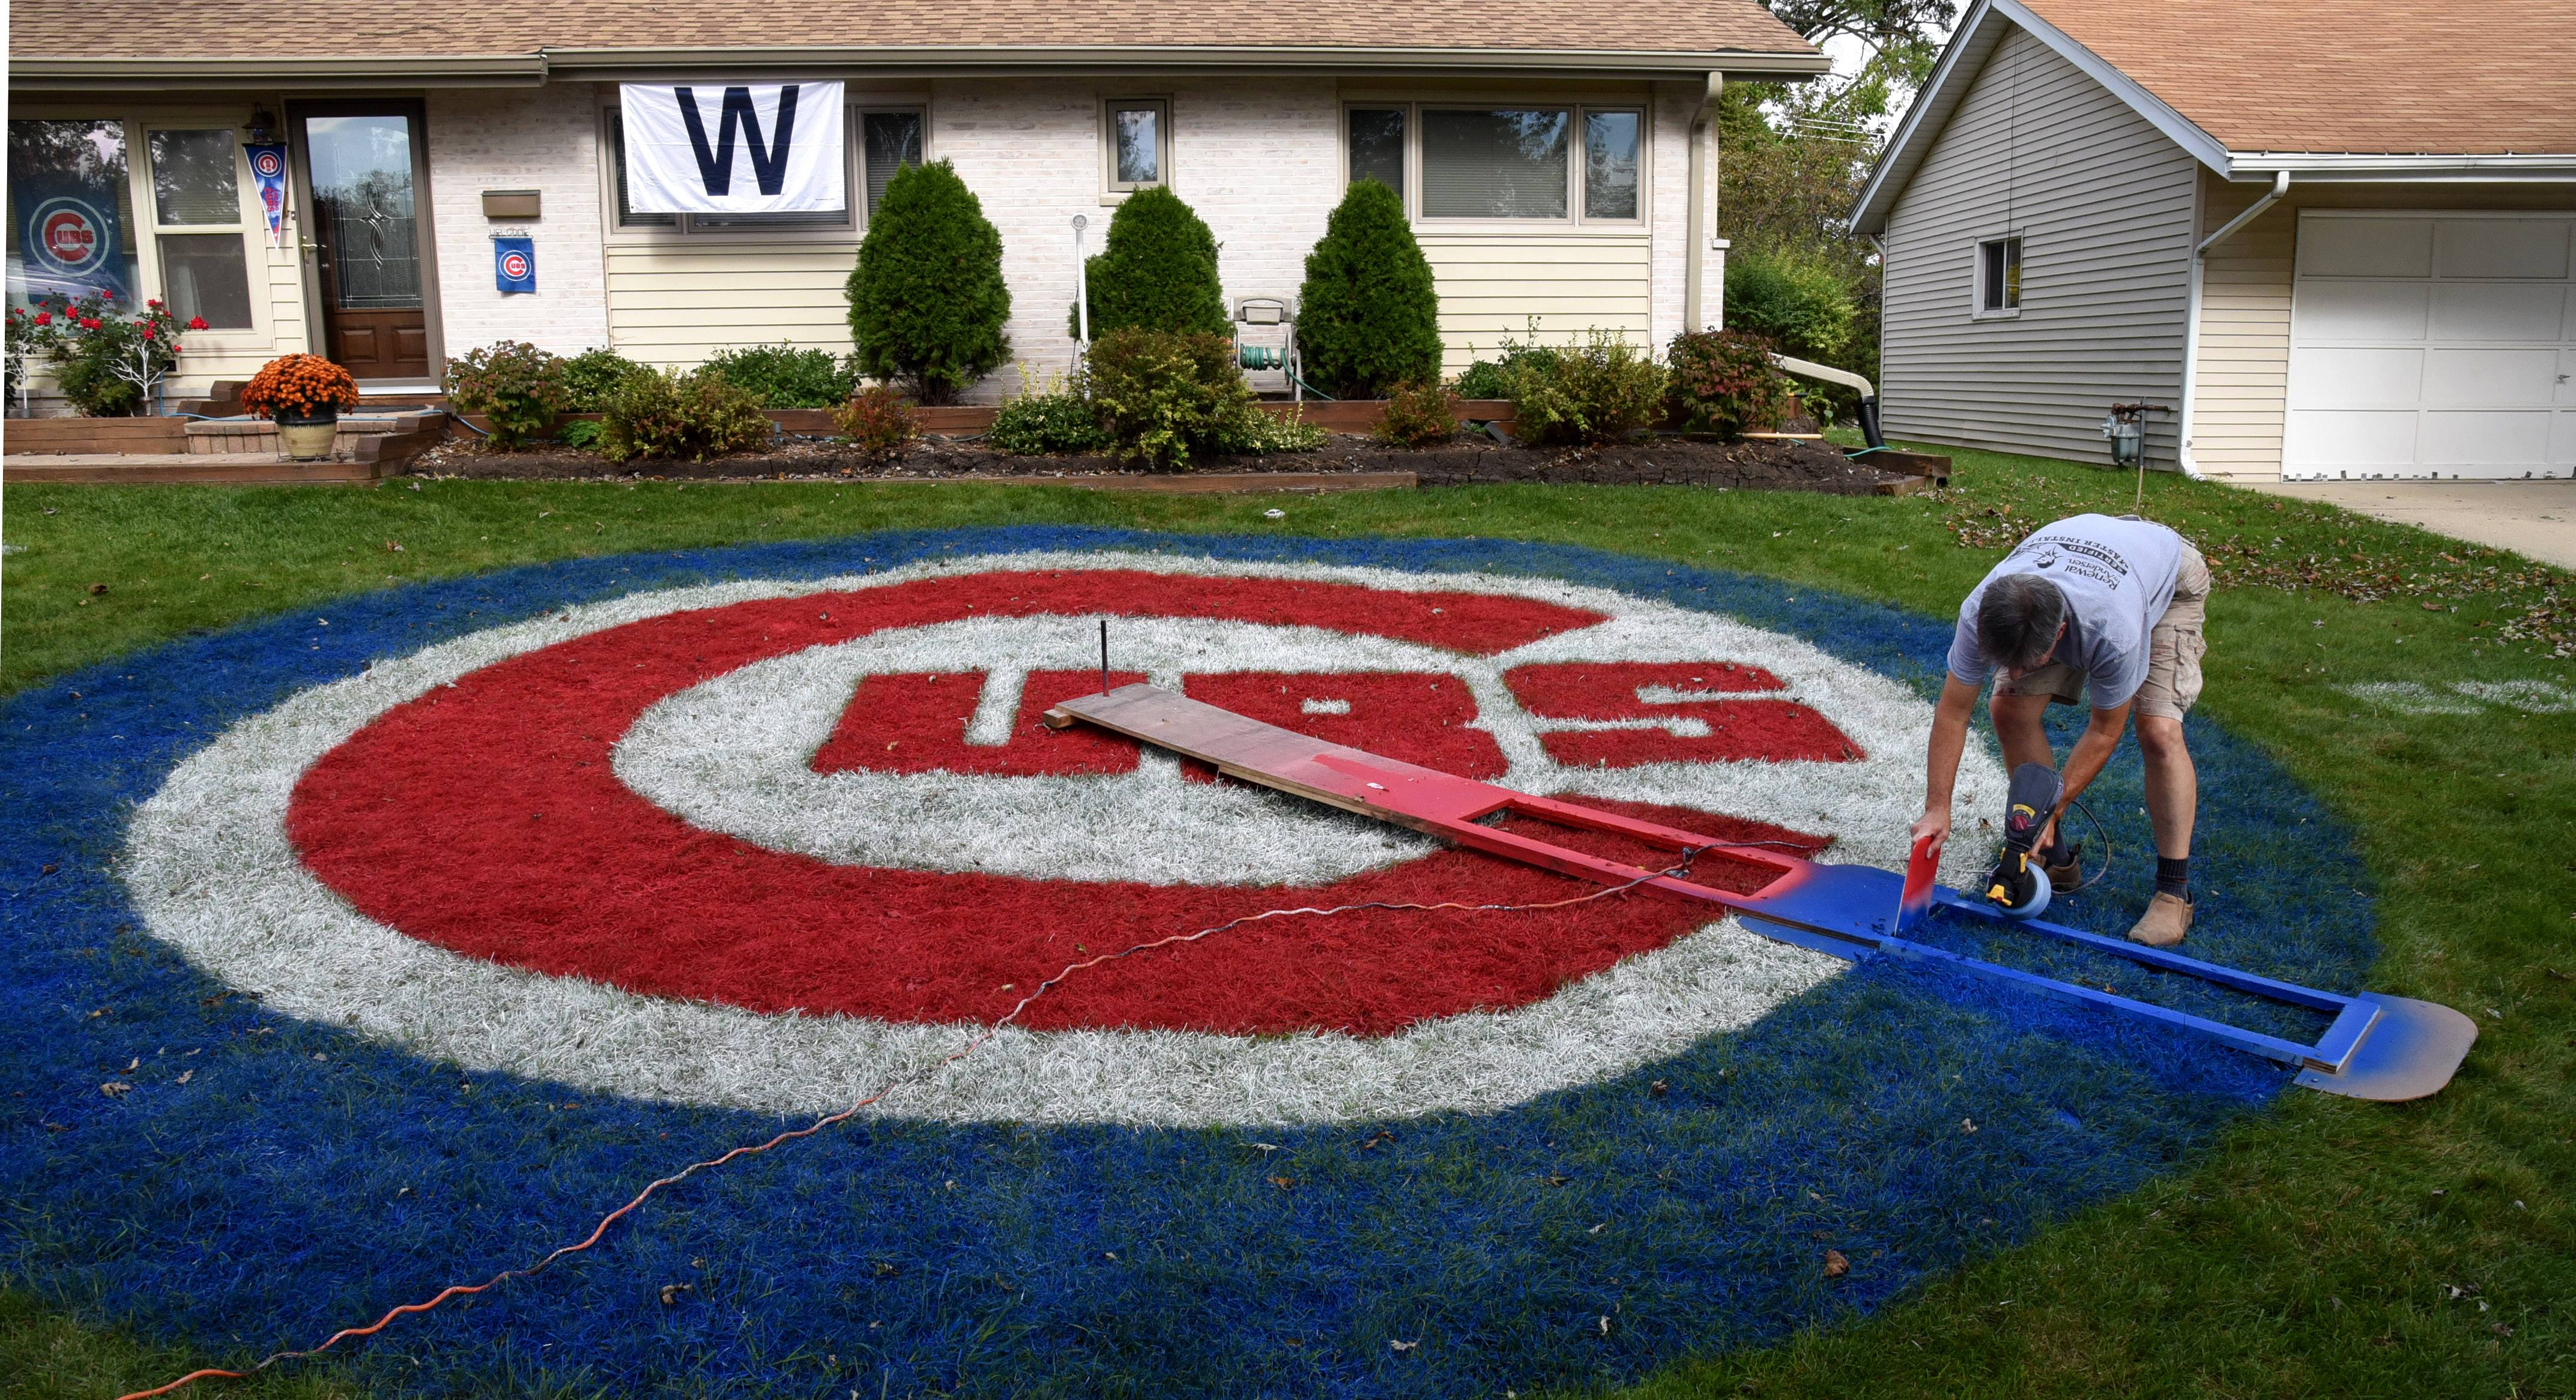 Fan leaves no doubt about which team he's backing in the playoffs